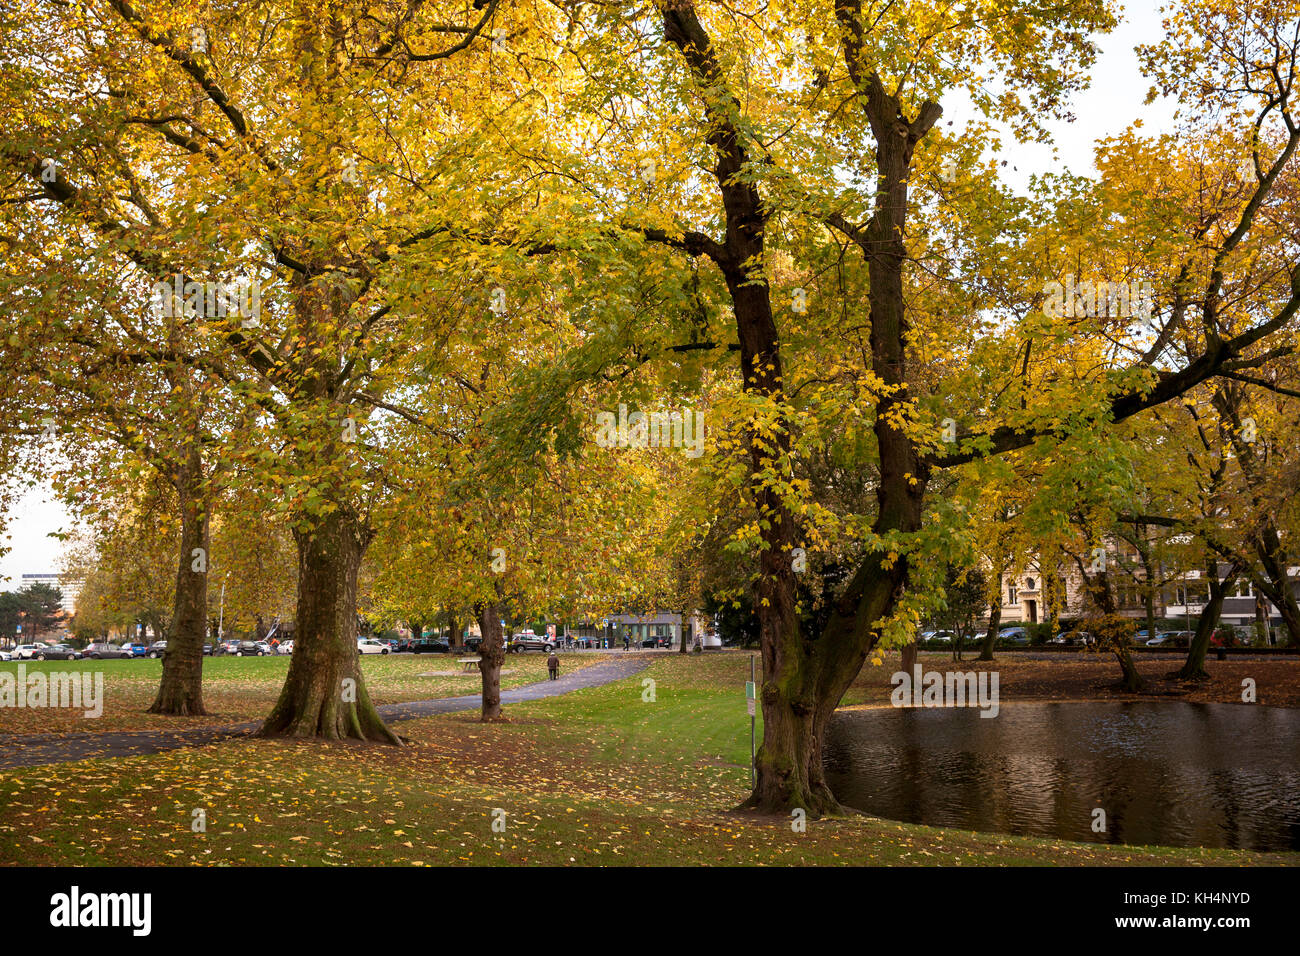 Europa, Germany, Cologne, park at the Theodor-Heuss-Ring near the square Ebertplatz.  Europe, Deutschland, Koeln, - Stock Image